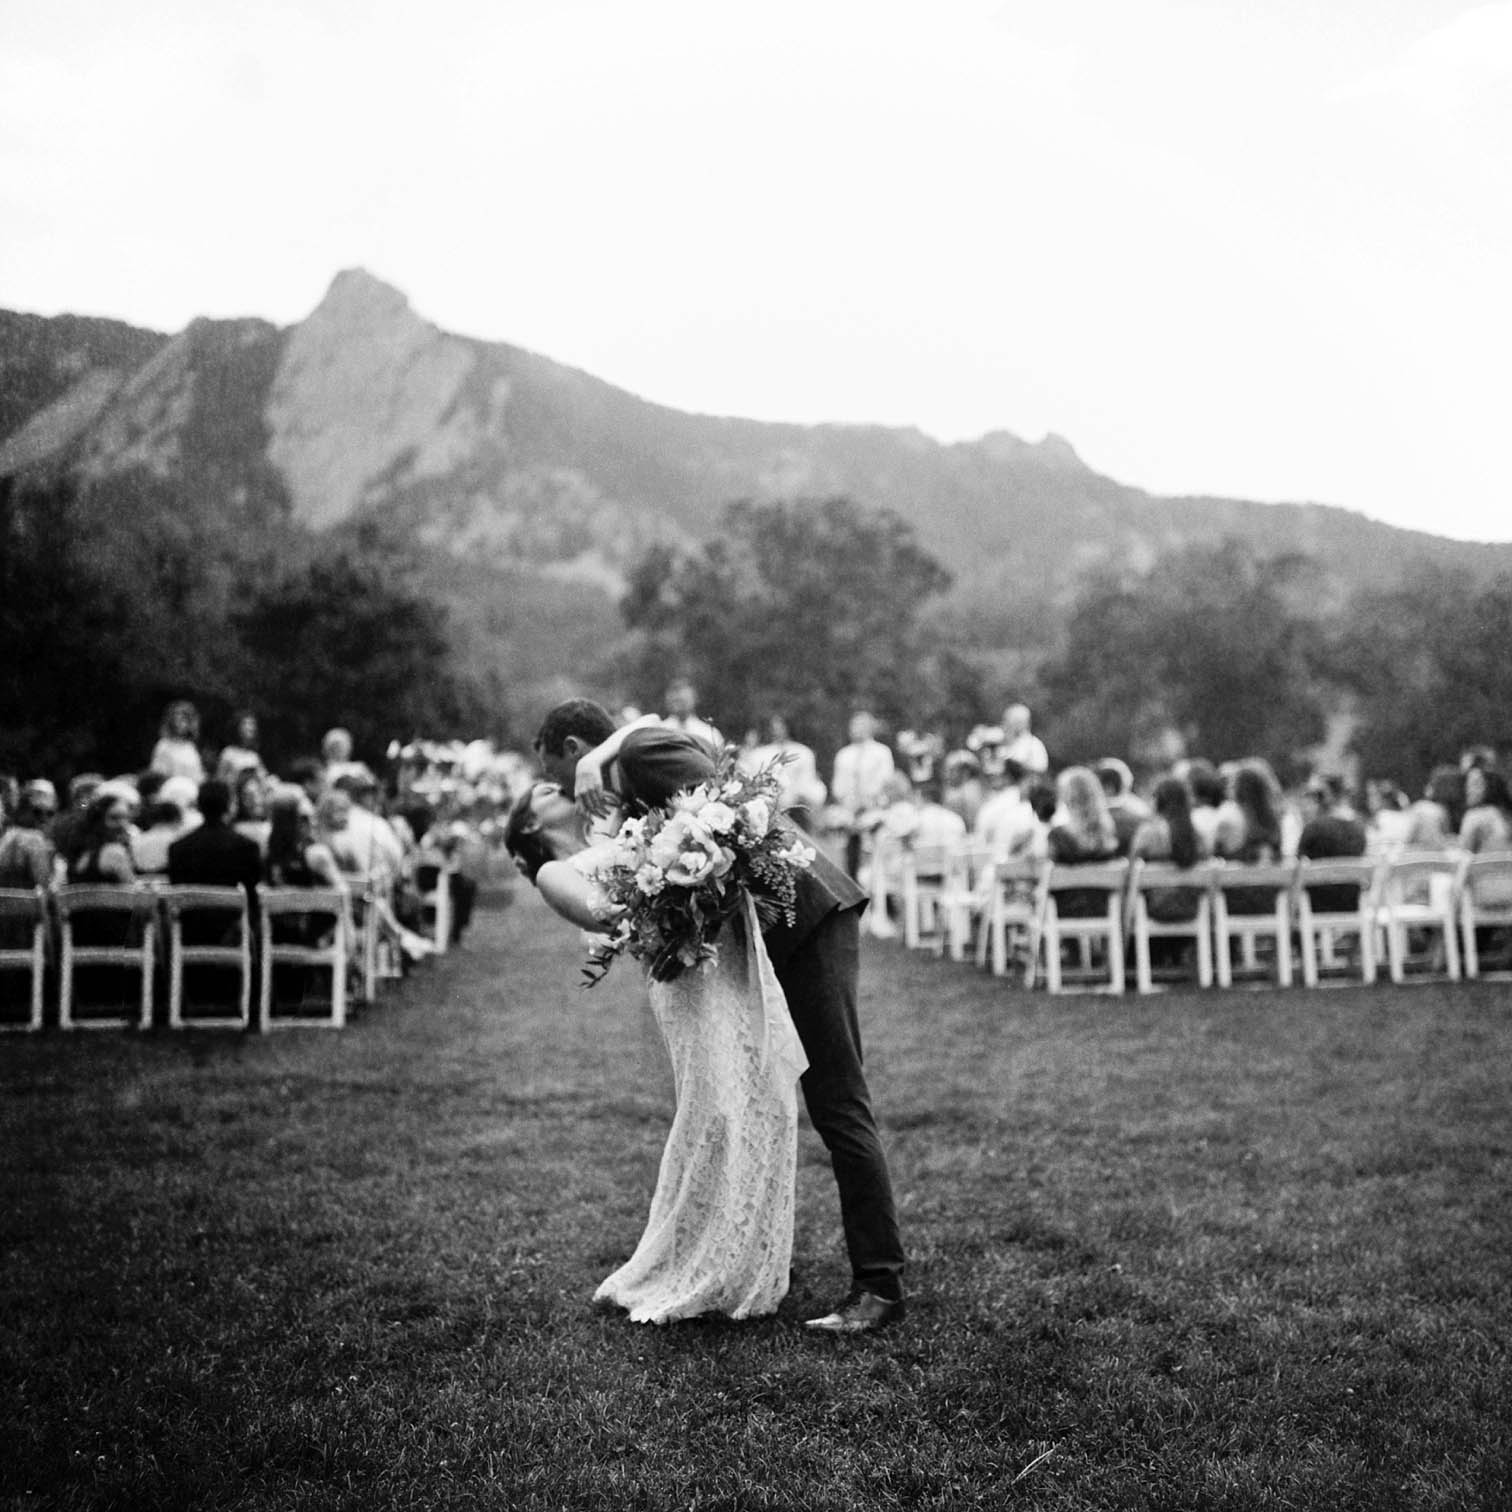 Outdoor Wedding Details, Colorado Mountain Weddings, Danielle DeFiore Photographer, Destination Wedding Photographers, Weddings in Boulder Colorado, Outdoor Ceremony, Film Photographer, Rolleiflex, Black and White Wedding Photos, Groom Kissing Bride